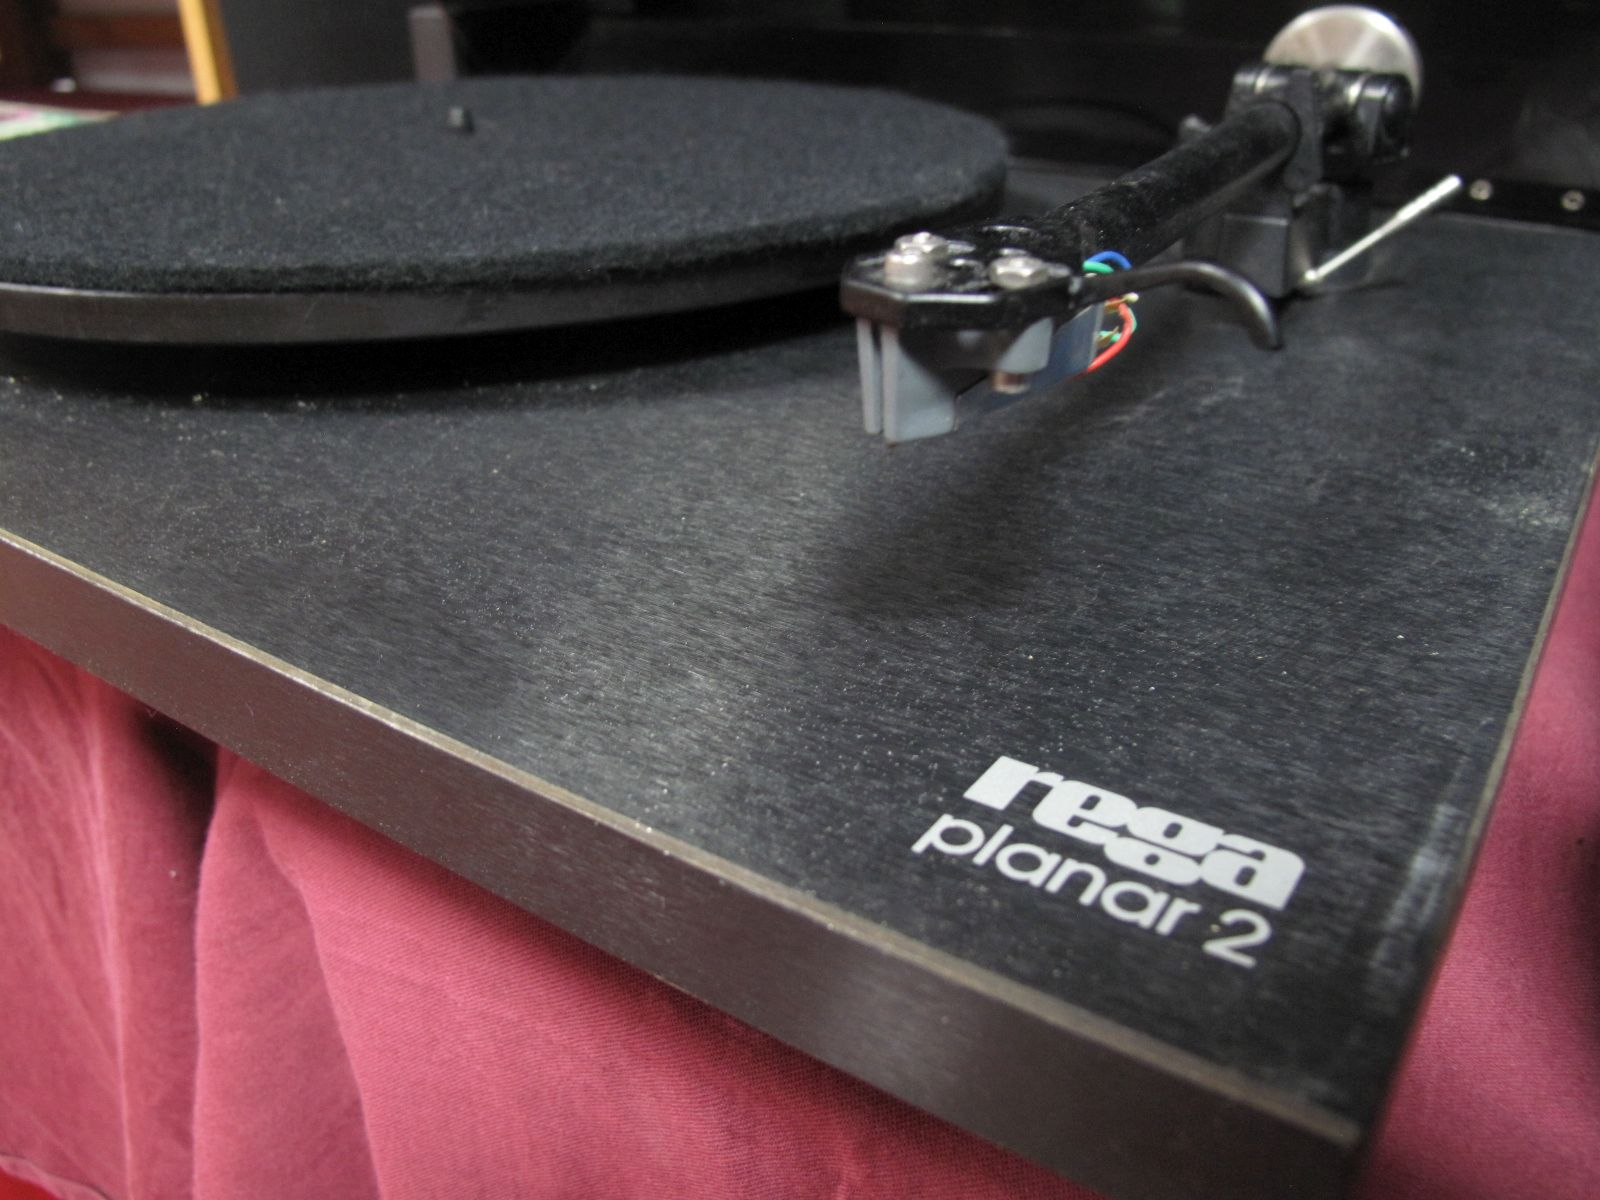 Lot 33 - A Rega Planar 2 Turntable, (no information printed on the stylus/cartridge), with two carbon fibre